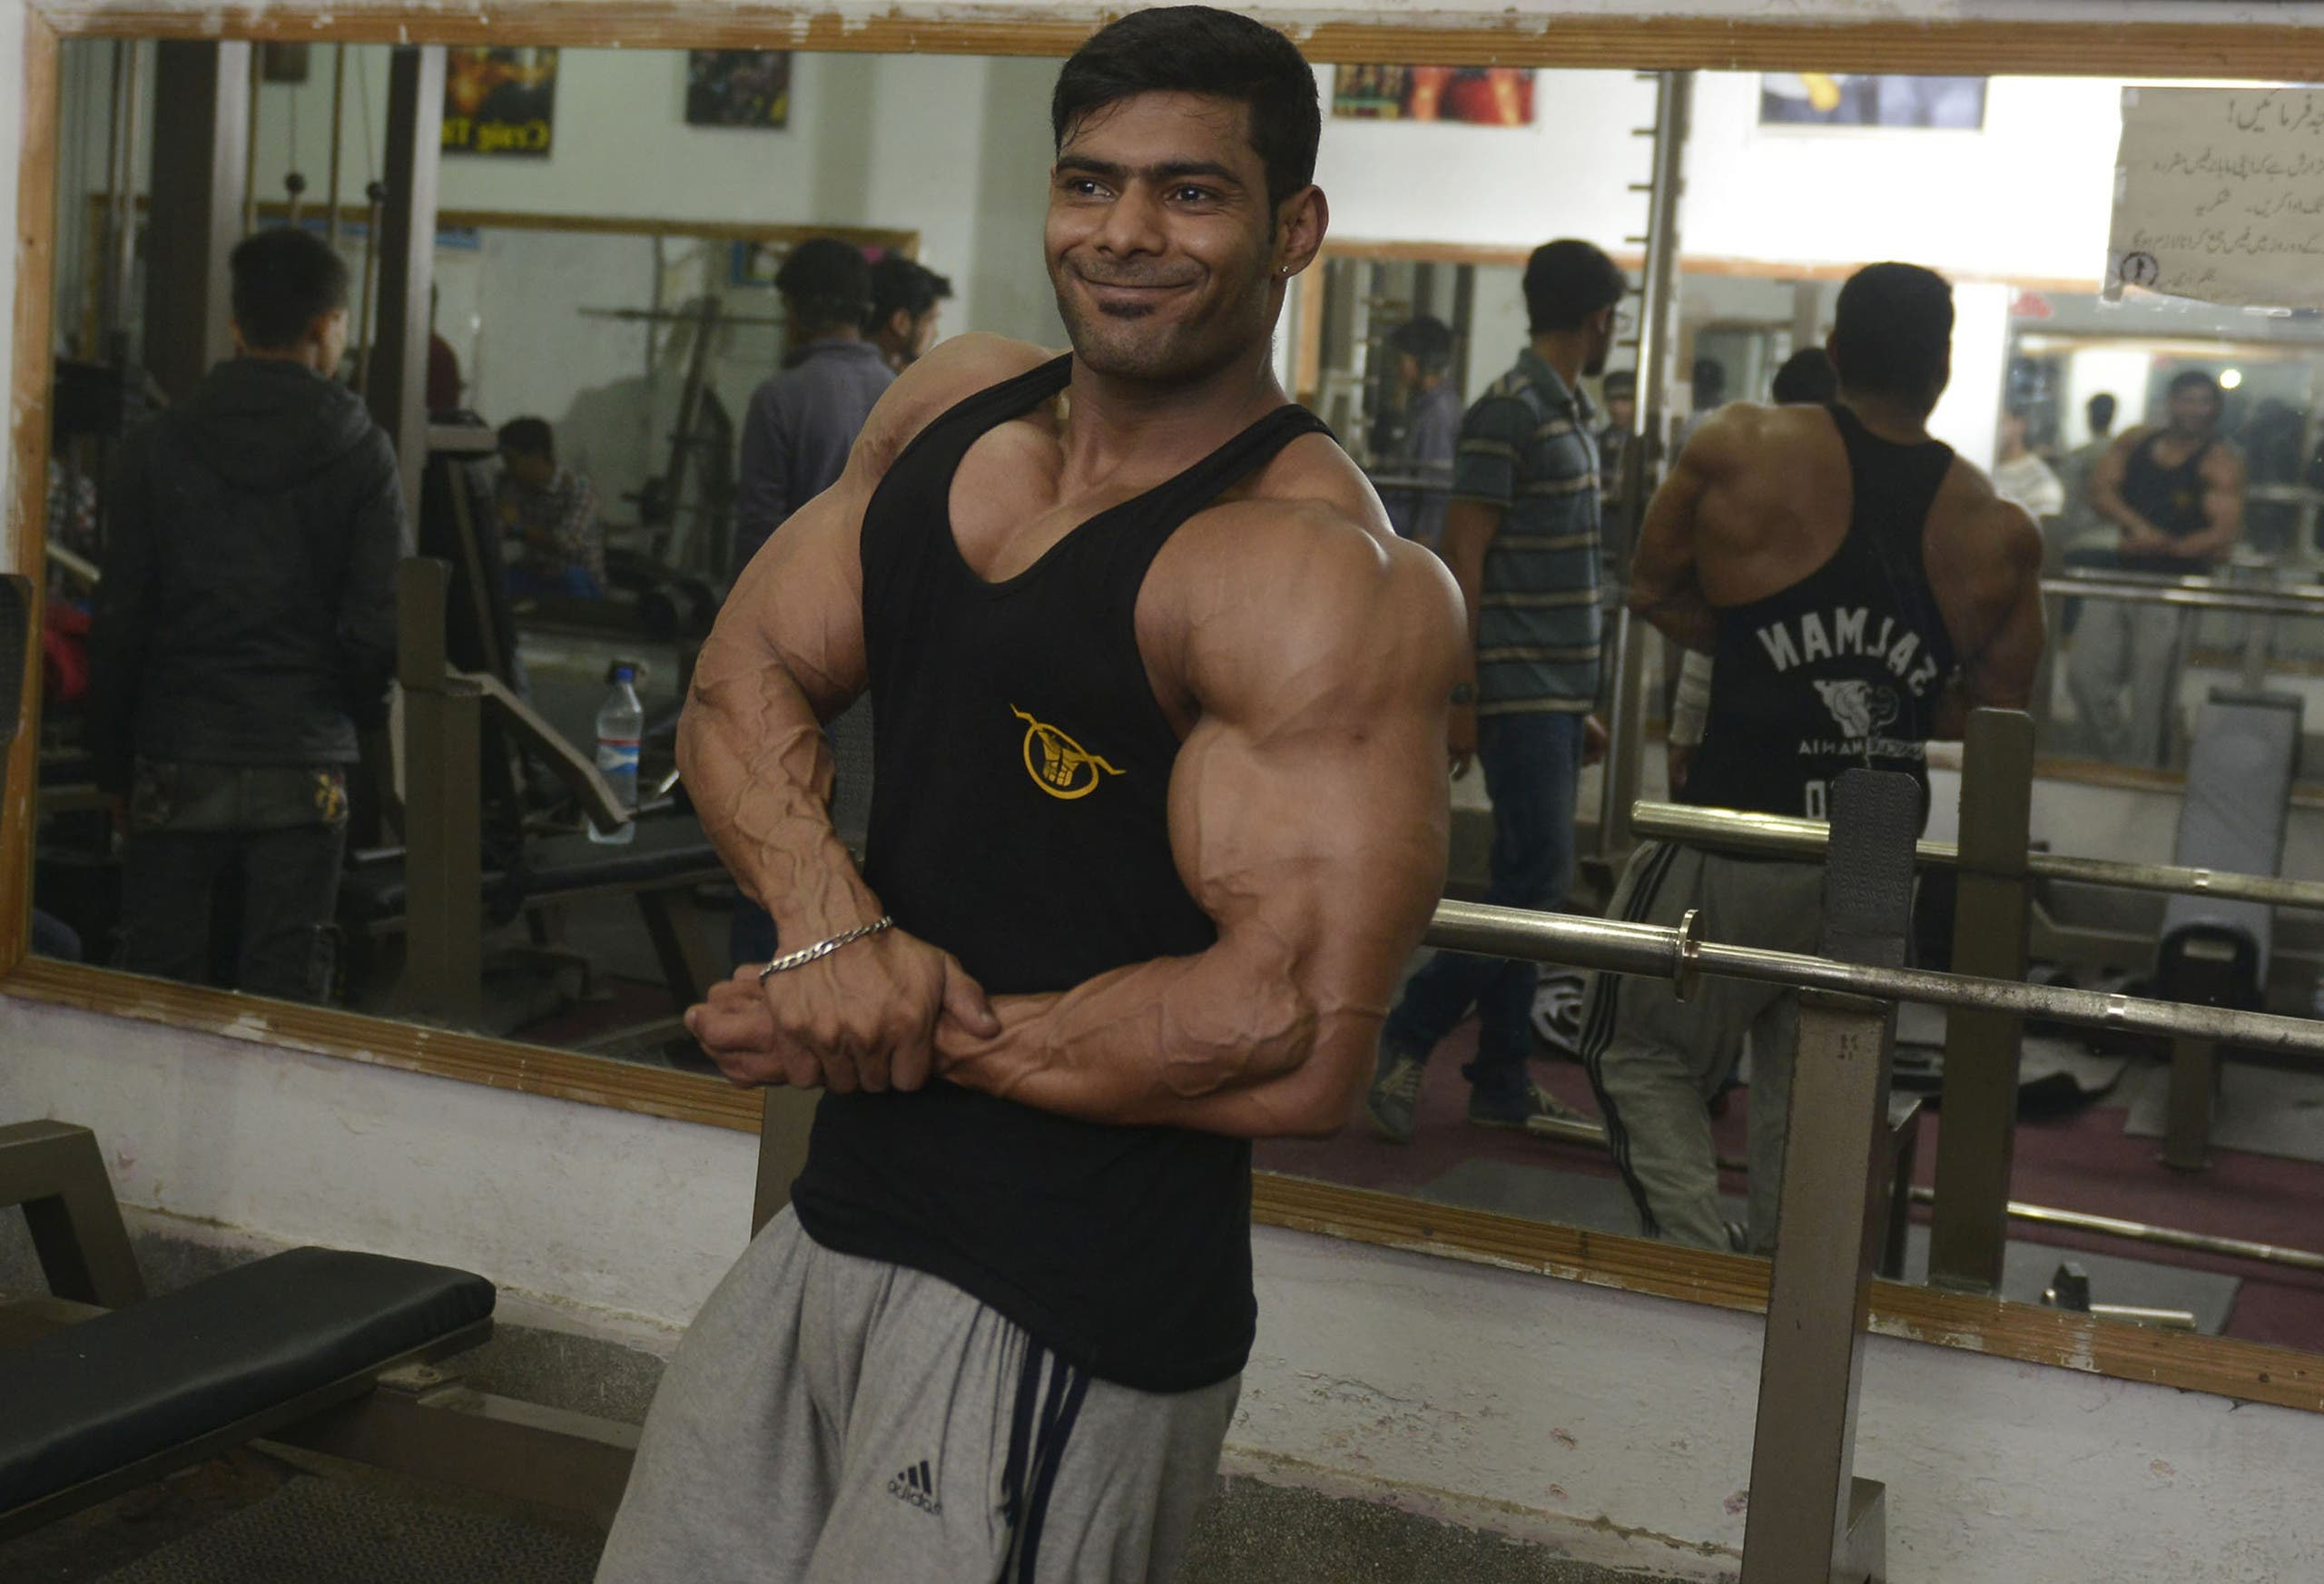 AFP In this photograph taken on January 9, 2016, Pakistani body builder Salman Ahmed poses for a photograph at his gym in Lahore.